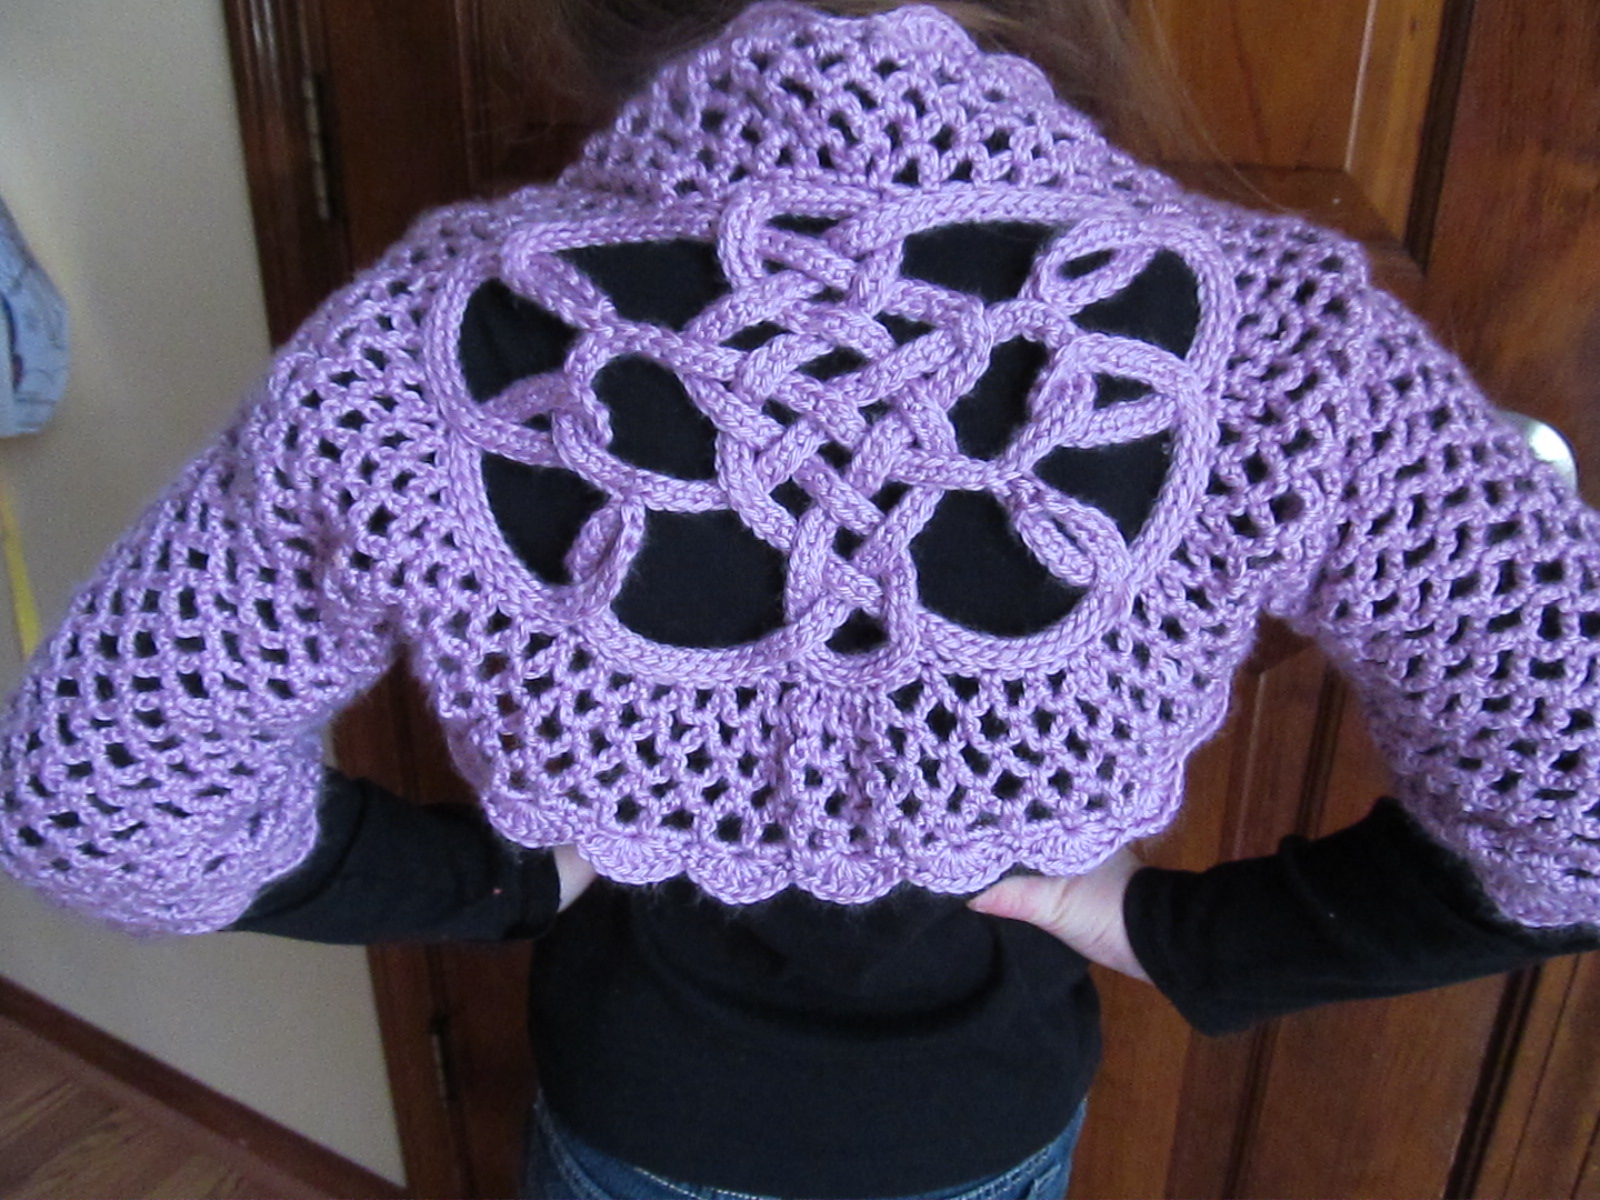 Crochet Knot : Celtic Knot Crochet: Lilac Shrug with Celtic Knot